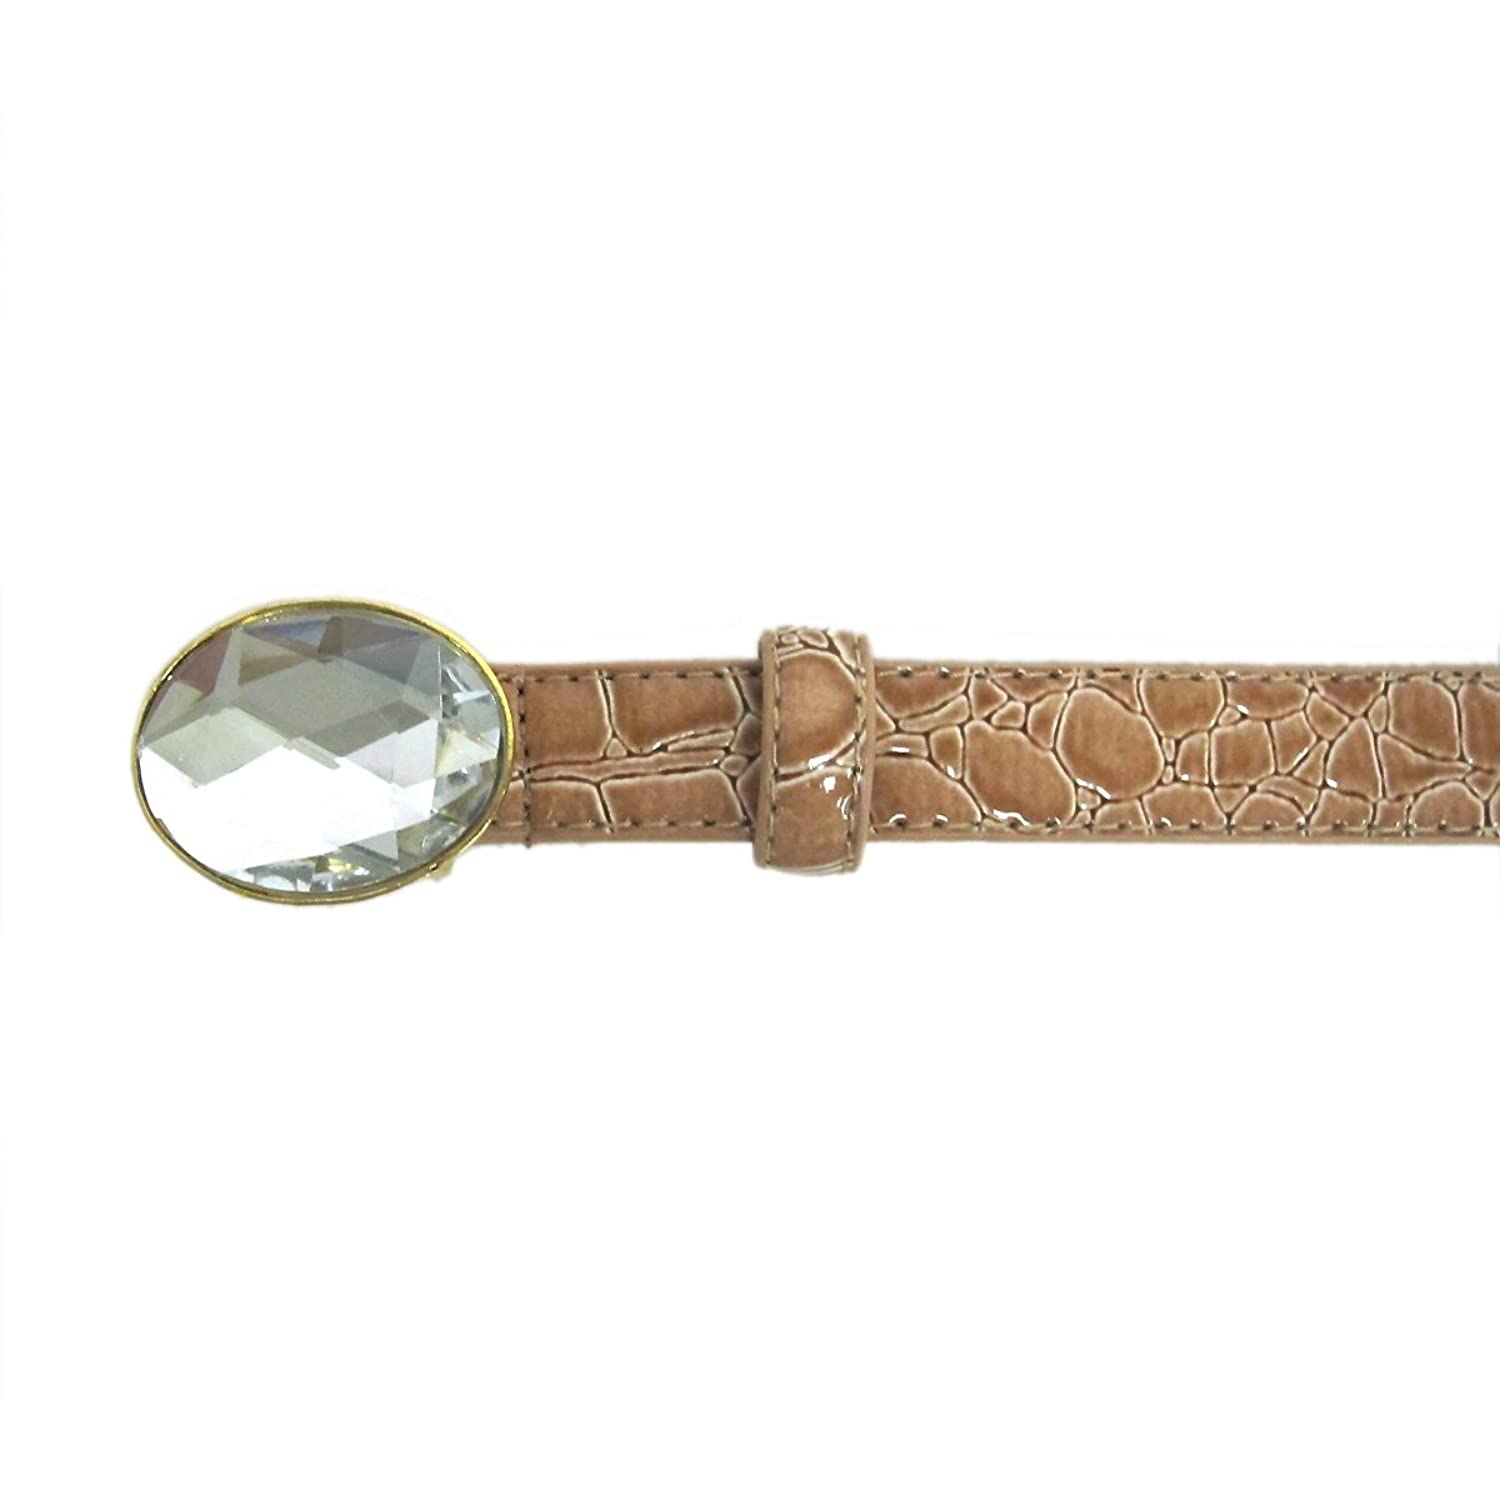 "3/4"" Women's Fashion Oval Buckle with Precious Stone on Quality Croc Leatherette Belt"